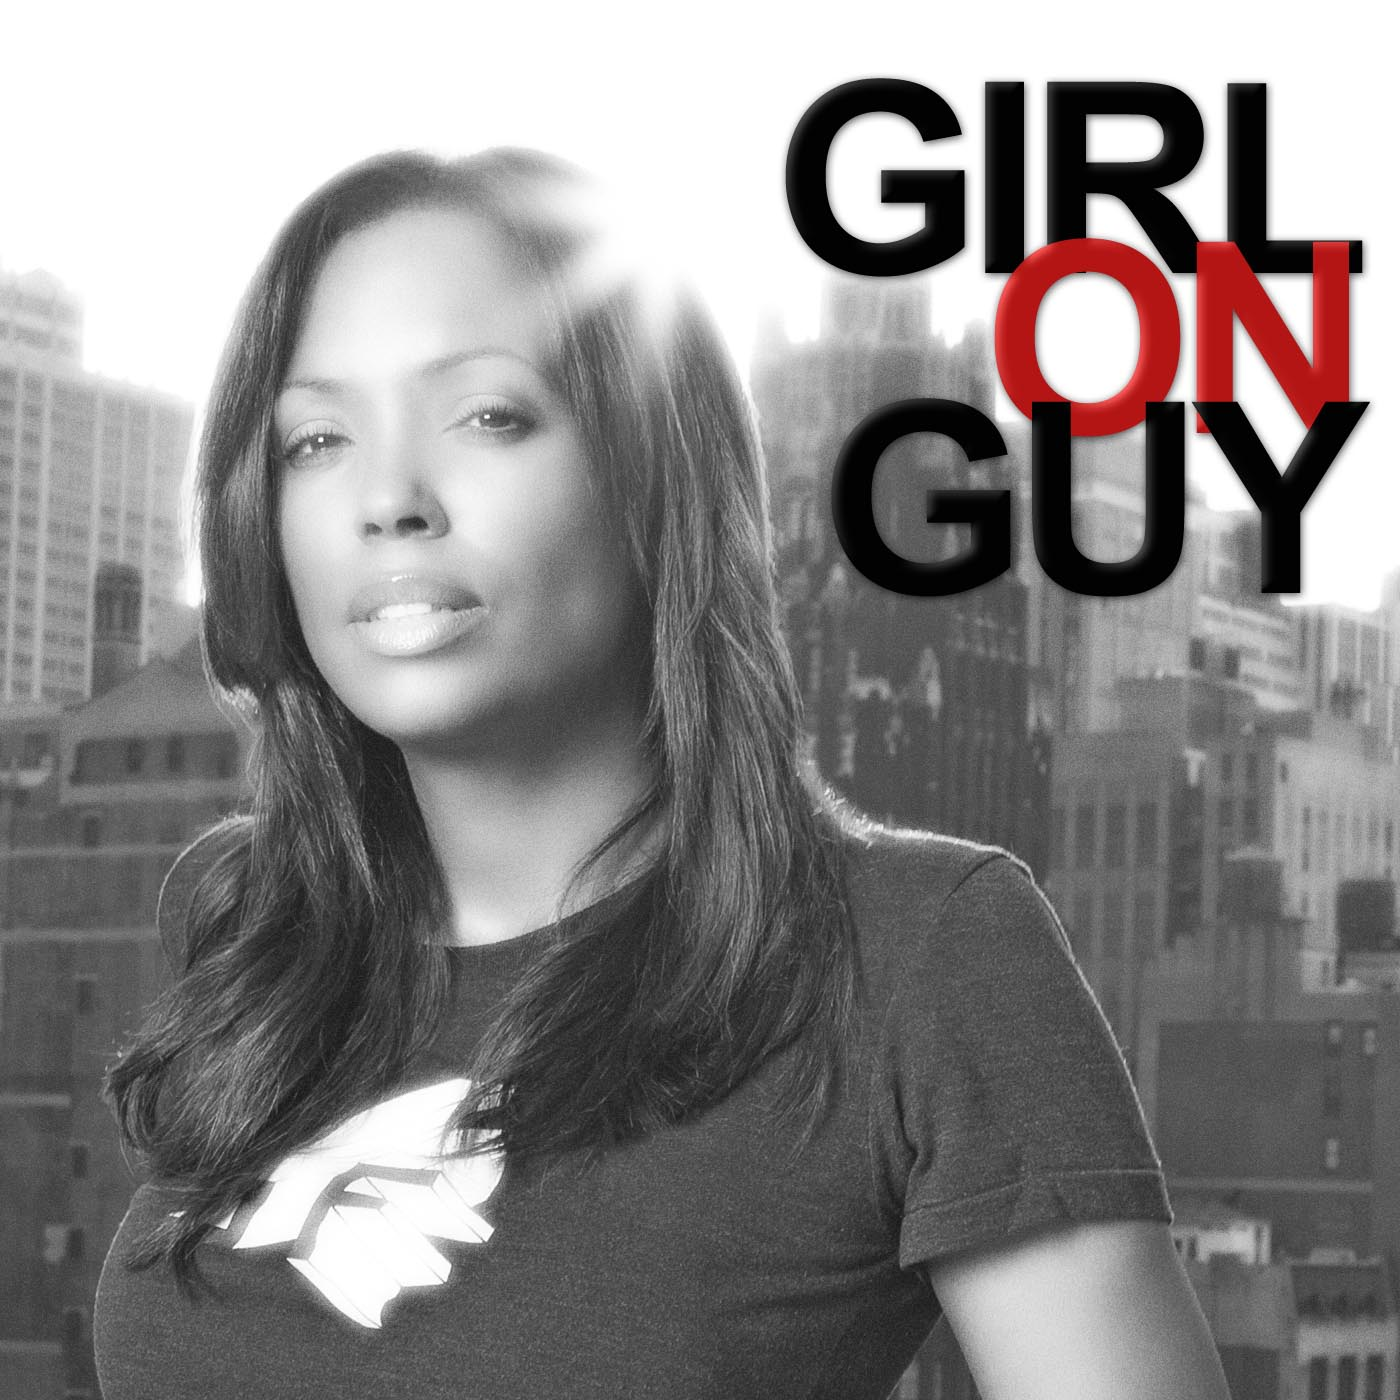 Girl on Guy with Aisha Tyler show image